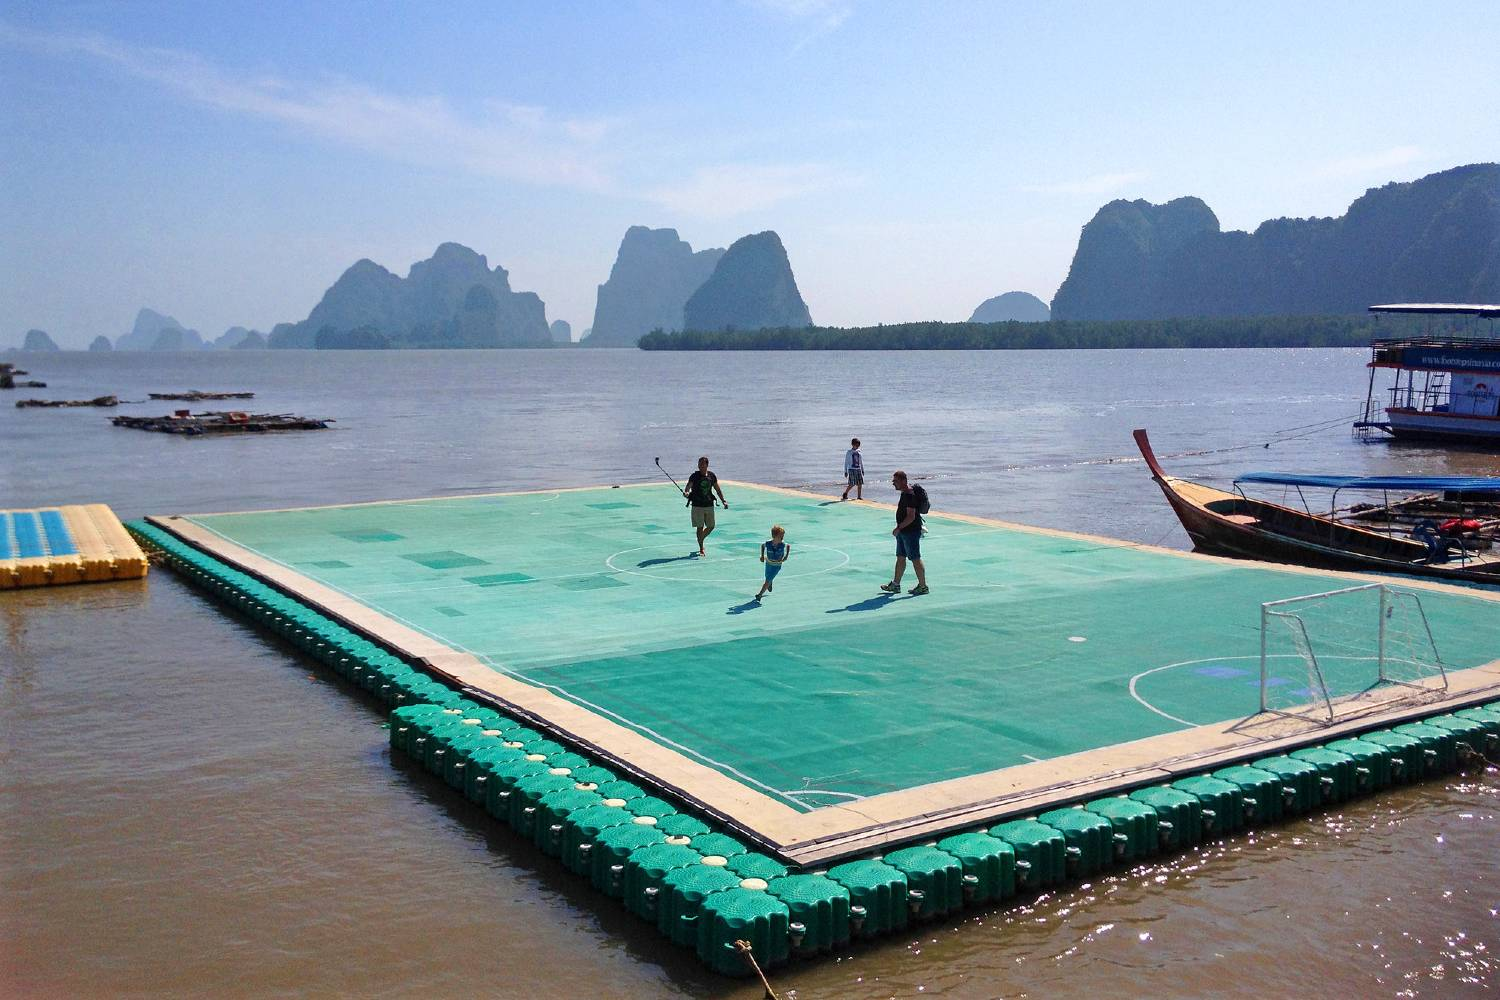 Playing soccer on a floating soccer field of Koh Panyee in the bay of Phang Nga